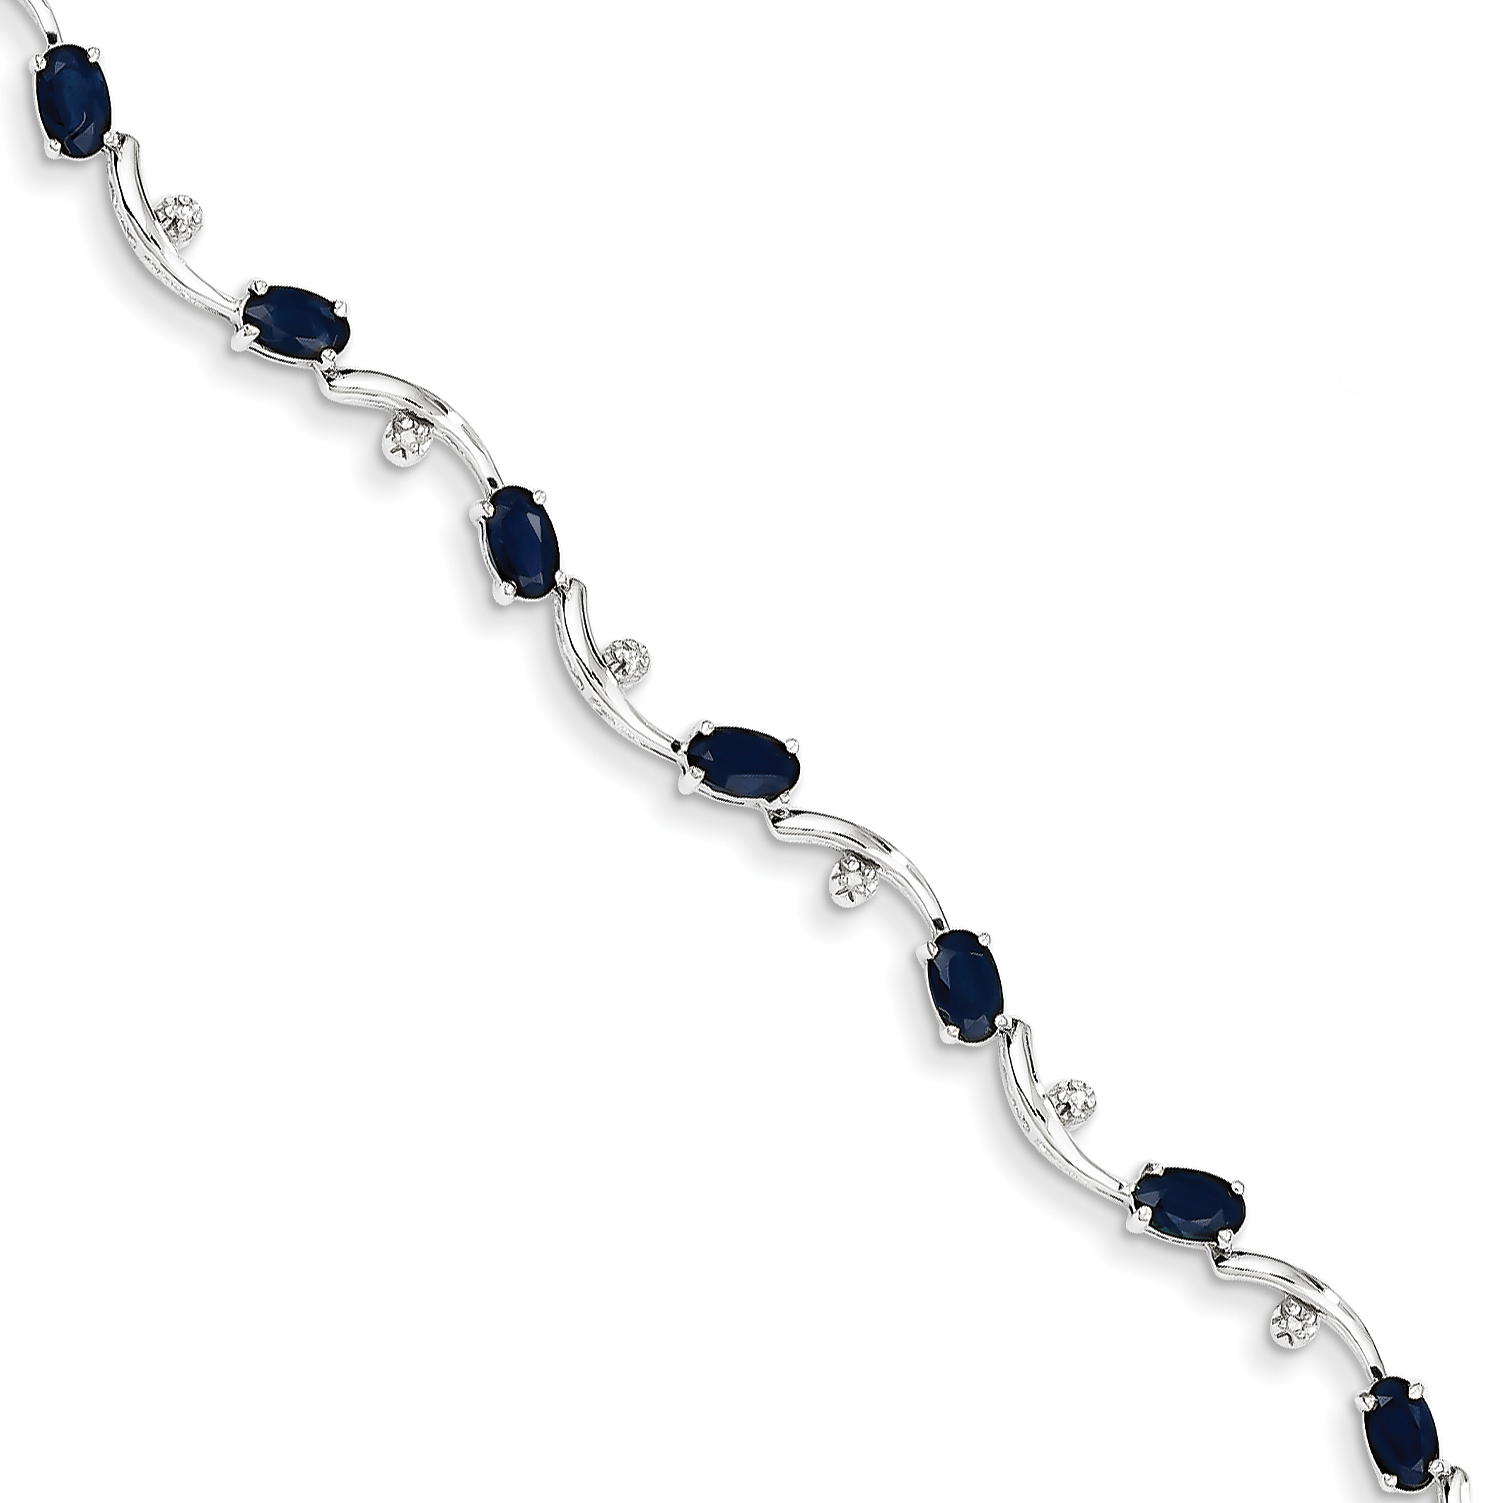 14k White Gold White Diamond and Sapphire Gemstone Bracelet by